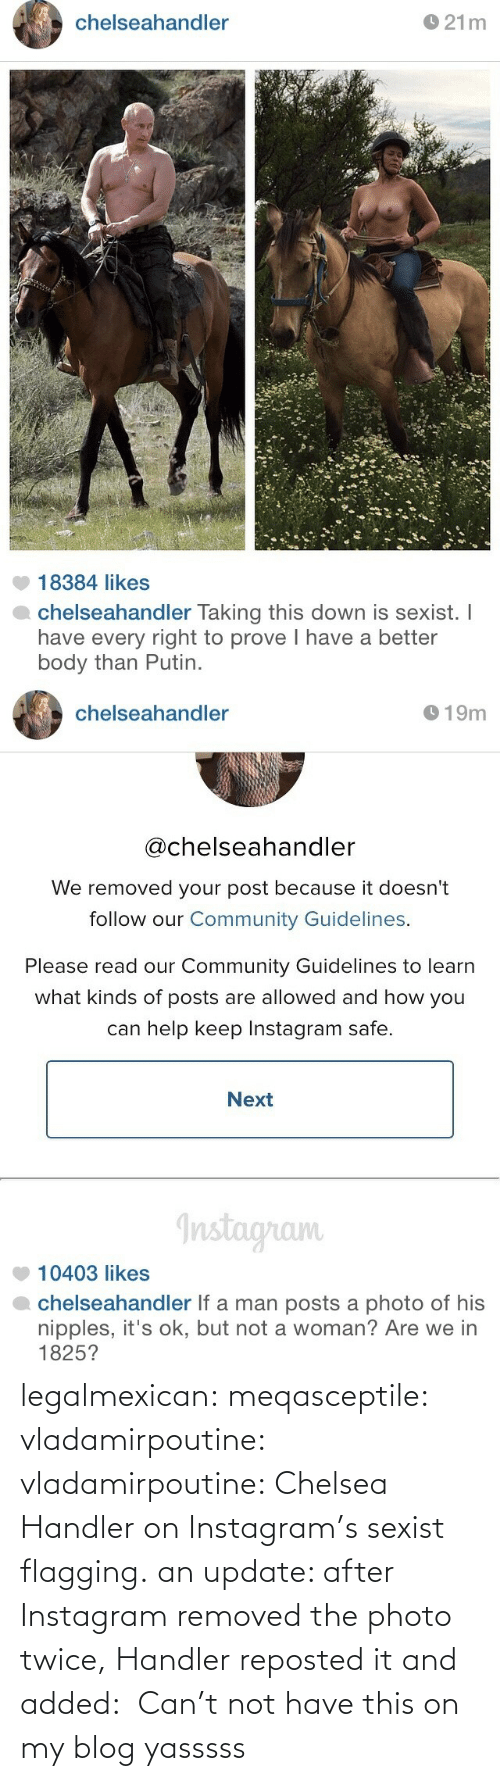 Handler: chelseahandler  O 21m  18384 likes  chelseahandler Taking this down is sexist. I  have every right to prove I have a better  body than Putin.   chelseahandler  O 19m  @chelseahandler  We removed your post because it doesn't  follow our Community Guidelines.  Please read our Community Guidelines to learn  what kinds of posts are allowed and how you  can help keep Instagram safe.  Next  Instagram  10403 likes  chelseahandler If a man posts a photo of his  nipples, it's ok, but not a woman? Are we in  1825? legalmexican:  meqasceptile:  vladamirpoutine:  vladamirpoutine:  Chelsea Handler on Instagram's sexist flagging.  an update: after Instagram removed the photo twice, Handler reposted it and added:  Can't not have this on my blog  yasssss